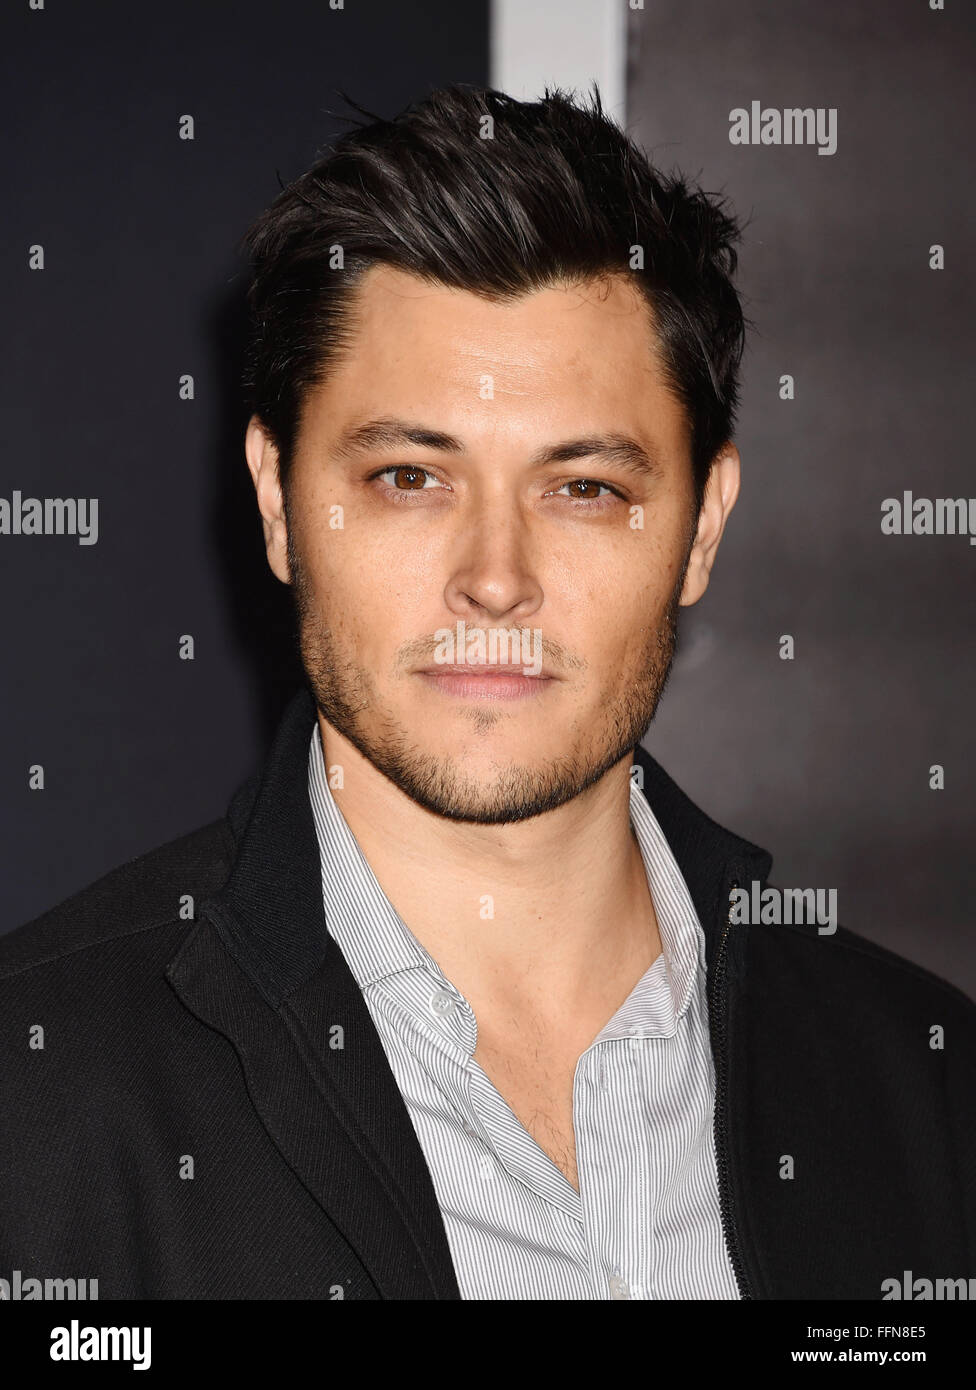 Actor Blair Redford arrives at the premiere of Warner Bros. Pictures' 'Creed' at Regency Village Theatre - Stock Image